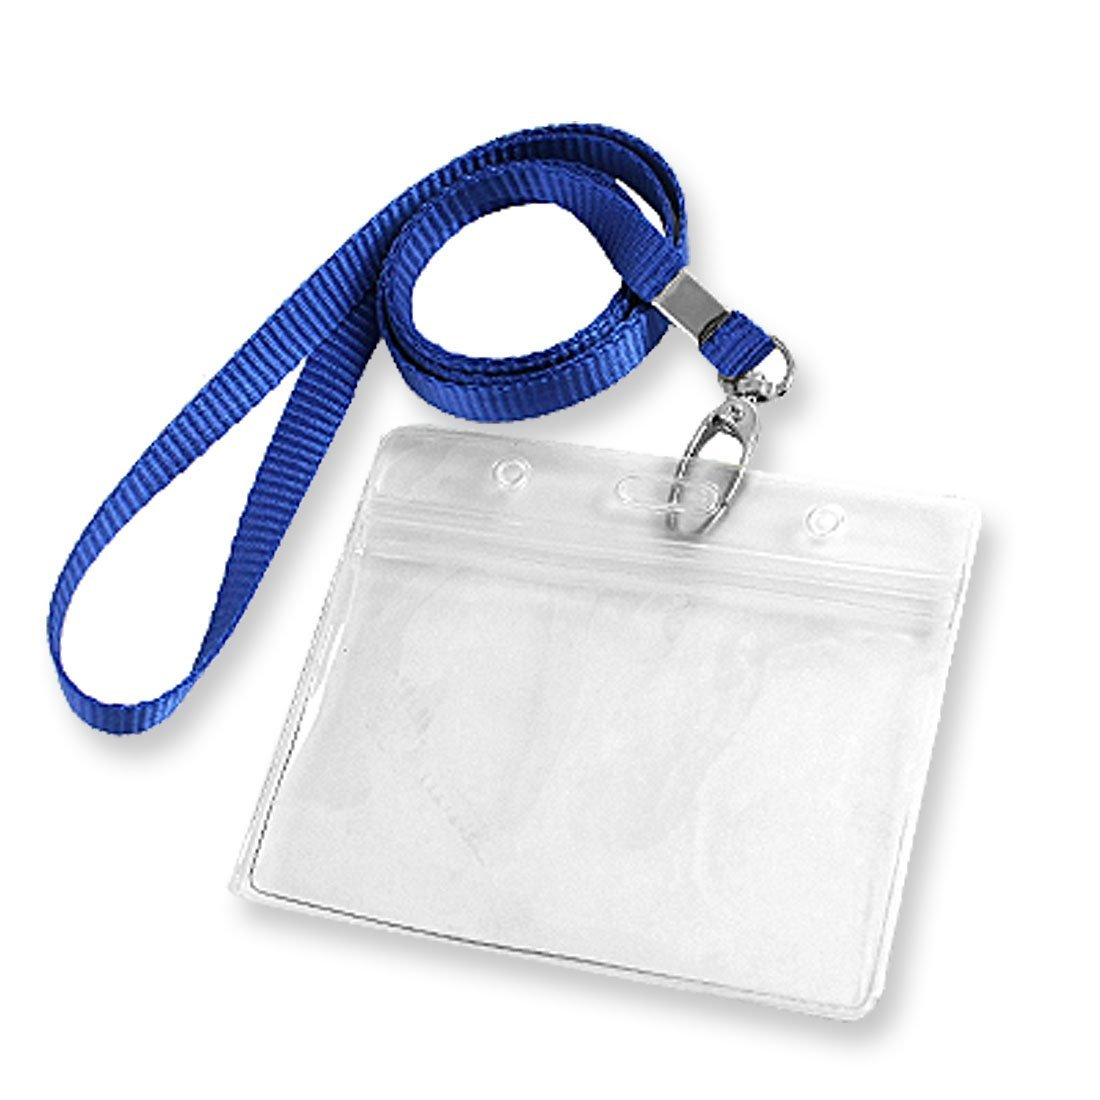 Uxcell Office School Name ID Card Horizontal Holder, 2-Piece, Blue